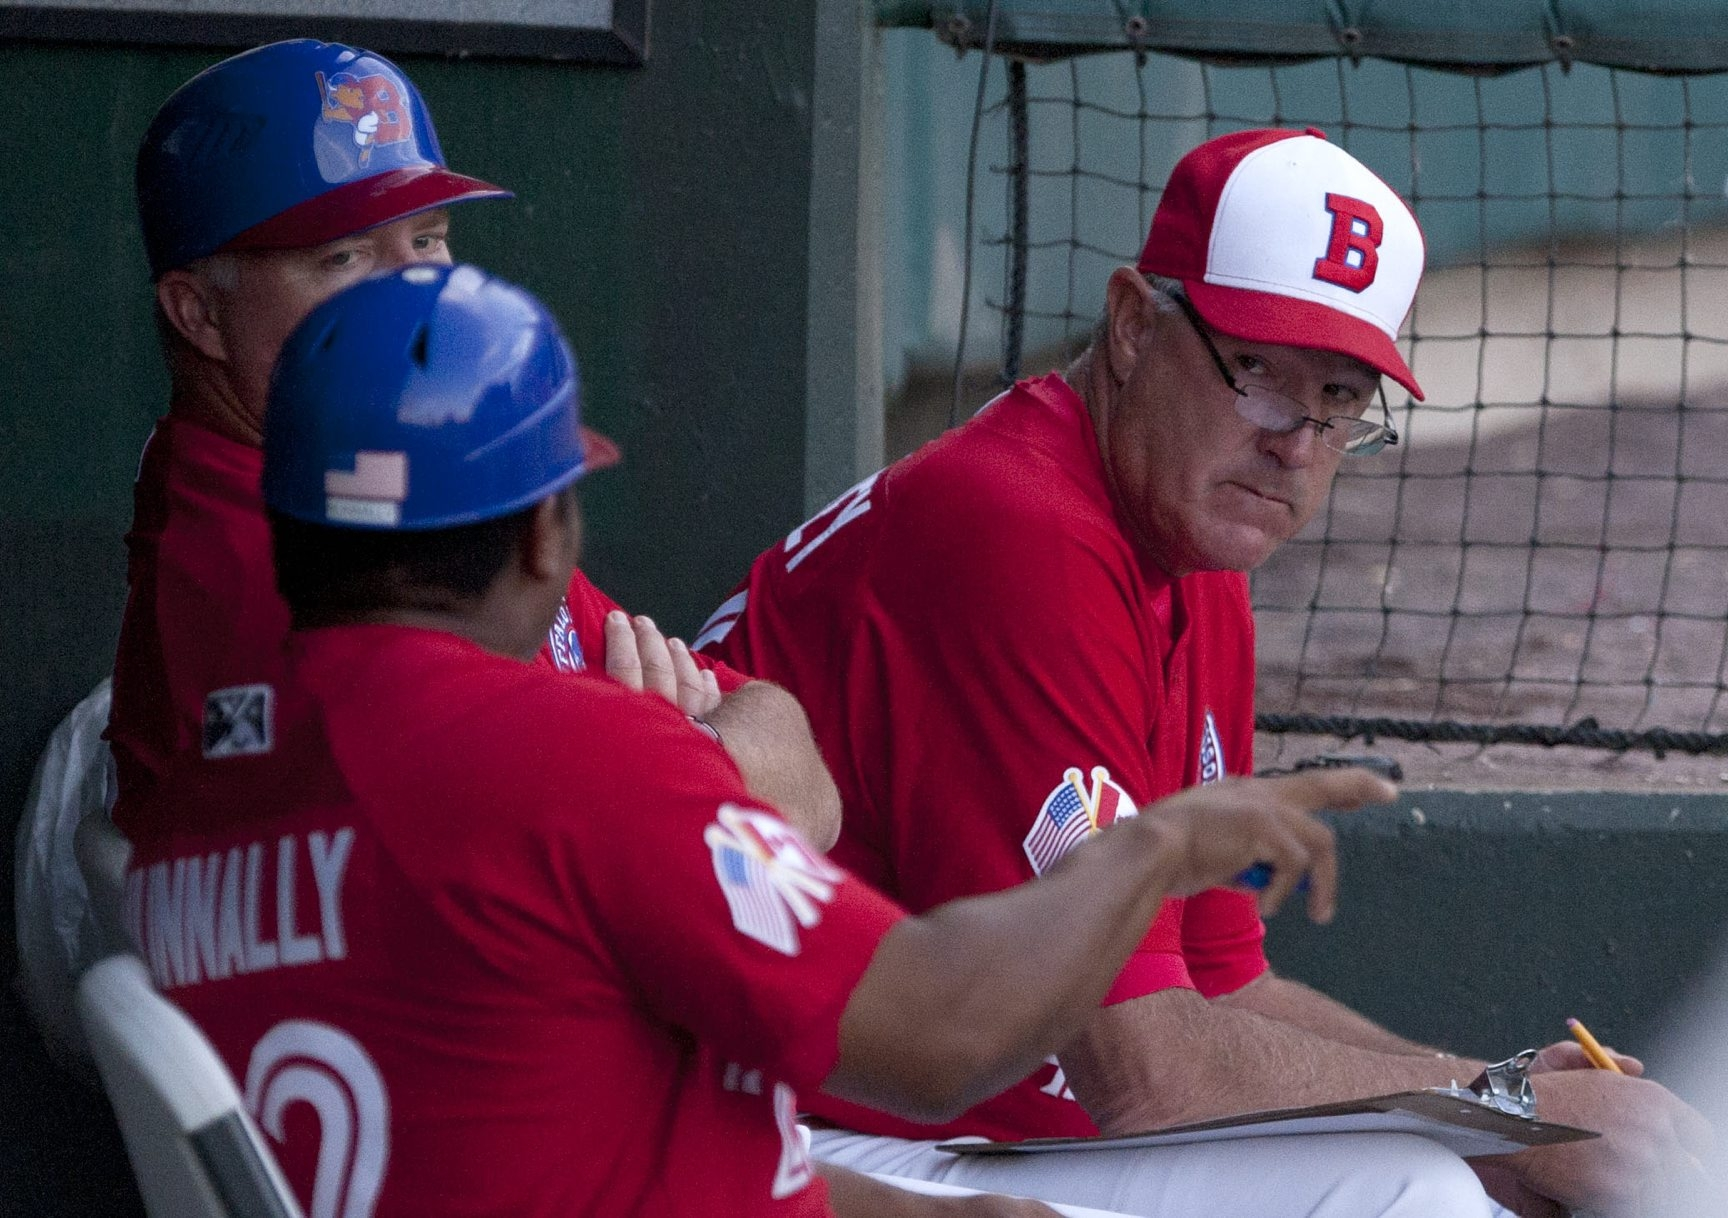 Bob Stanley is satisfied working in the minors, helping prospects achieve their dreams of reaching the majors.